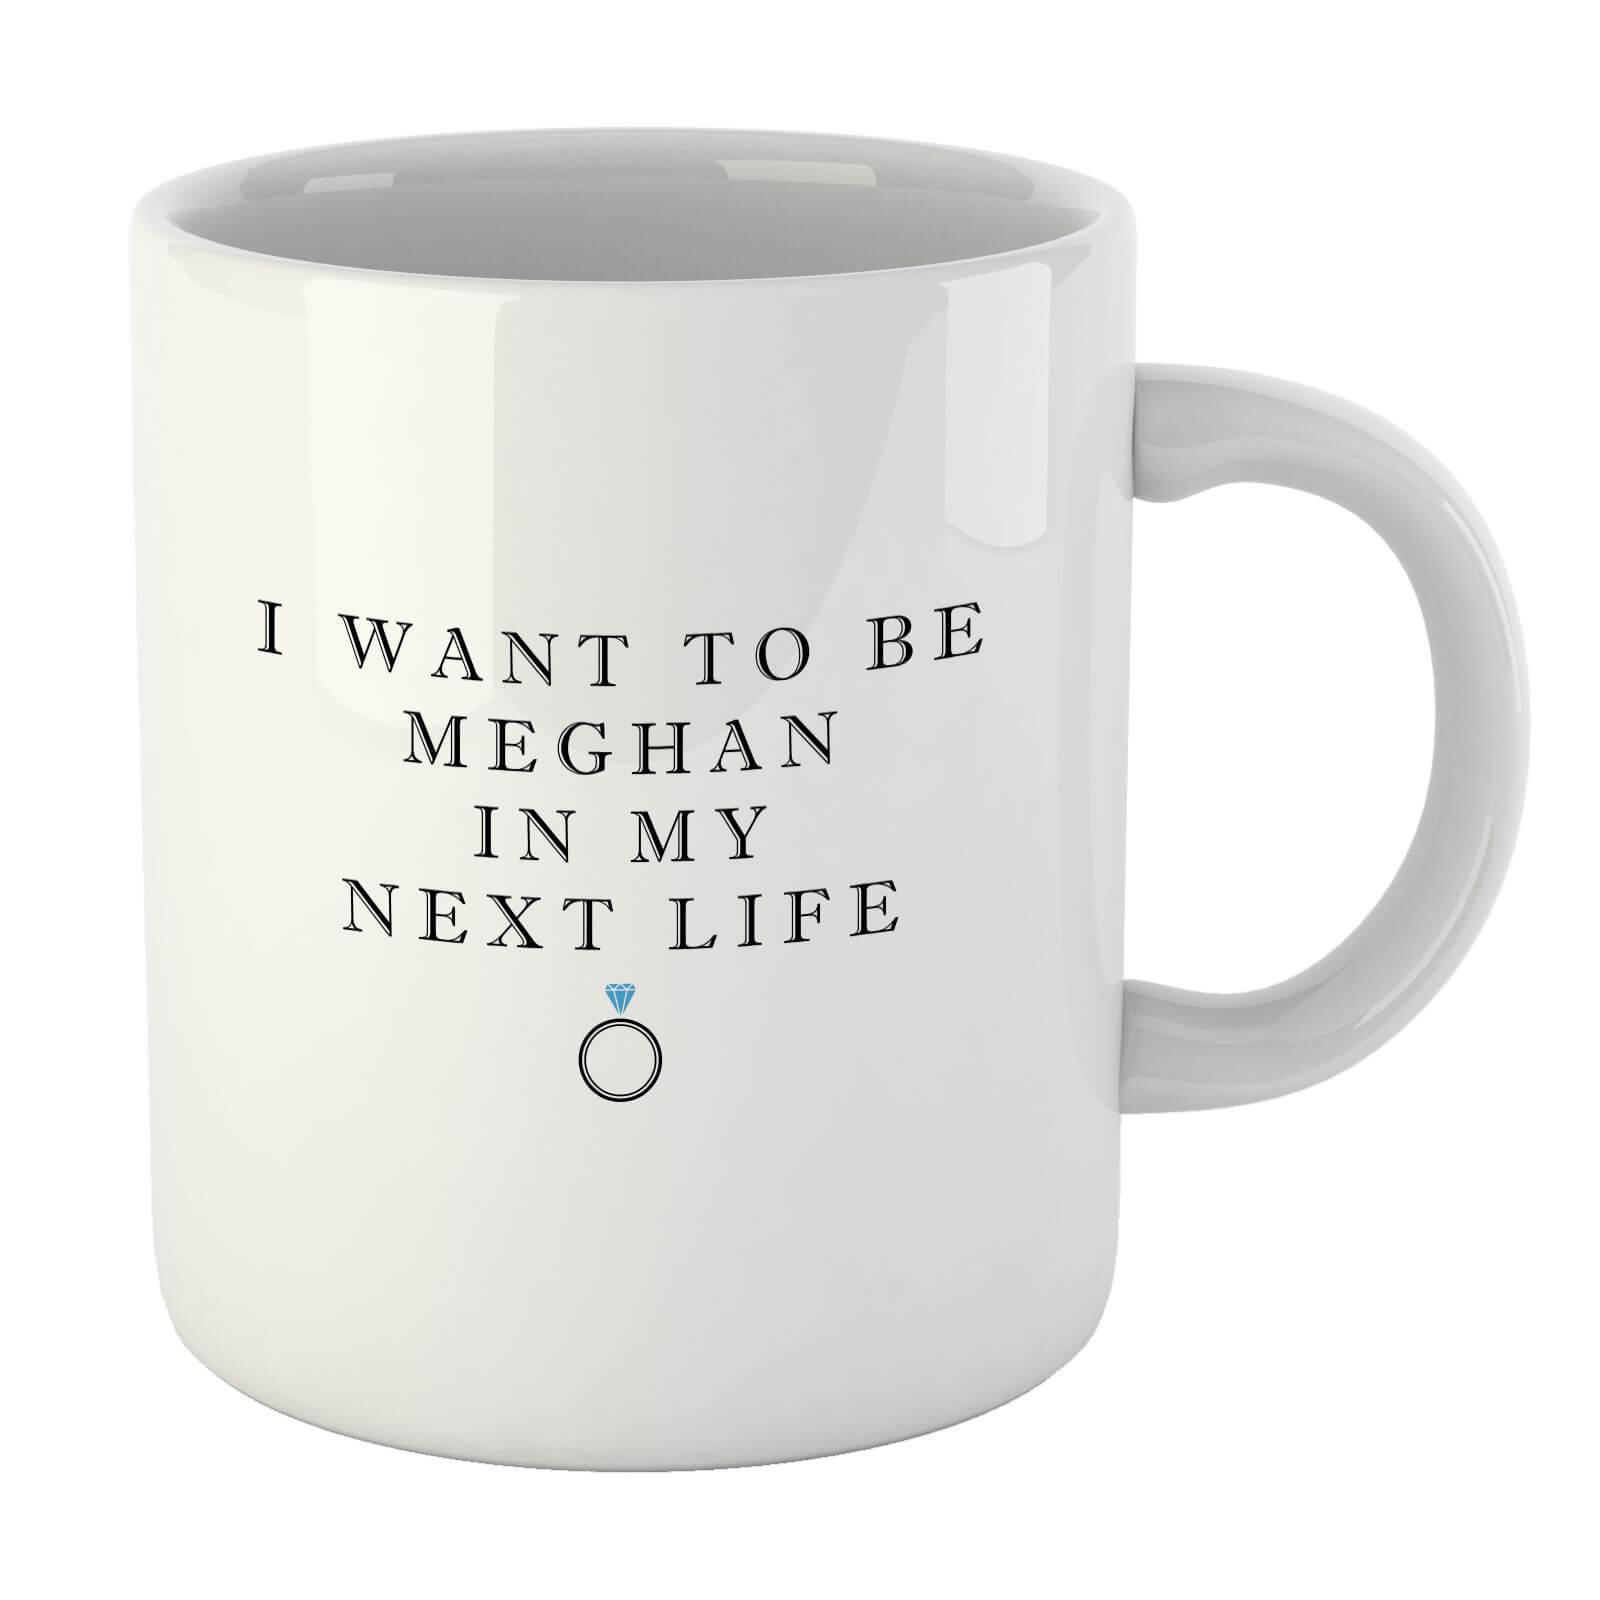 I Want To Be Meghan Mug